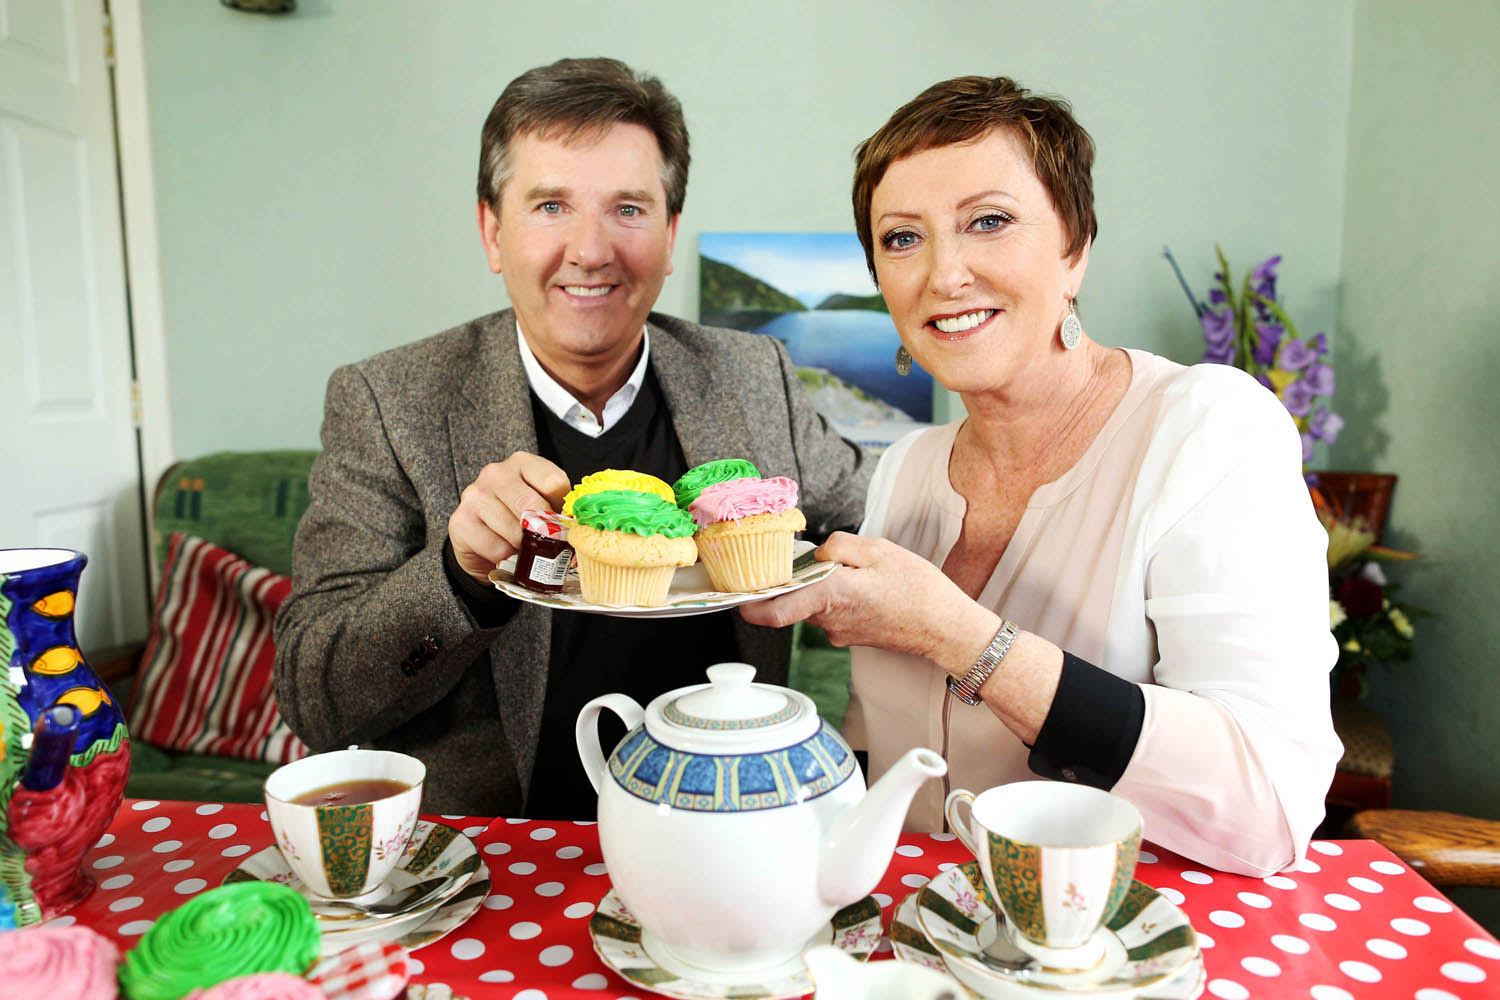 "02/06/2015 NO REPRO FEE, MAXWELLS DUBLIN. Pictured are Daniel and Majella O'Donnell at Willow House B&B, Drumcondra, Dublin 9. UTV Ireland today announced that filming is set to begin on a brand new travel show starring Daniel O'Donnell and his wife Majella.  The new six-part series called 'Daniel and Majella's B&B Road Trip' is a reality travel show with a difference. The popular couple will take to the road visiting areas of natural beauty and taking in all that Ireland has to offer, while staying only in B&B accommodation throughout their trip. Filming will commence in early July and the show will air on UTV Ireland later this year PIC: NO FEE, MAXWELLS. UTV Ireland announces Daniel and Majella's B&B Road Trip UTV Ireland today announced that filming is set to begin on a brand new travel show starring Daniel and Majella O'Donnell. The new six-part series called 'Daniel and Majella's B&B Road Trip' is a reality travel show with a difference. The popular couple will take to the road visiting areas of natural beauty and taking in all that Ireland has to offer, while staying only in B&B accommodation throughout their trip. Their B&B hosts will act as tour guides, showing them around the area and, as well as sharing stories across the dinner and breakfast table, local performers and characters will make cameo appearances for evenings of 'craic agus ceoil' with entertainment from Daniel and other local performers. Speaking about the launch of the new series, Mary Curtis, UTV Ireland's Head of Channel, said: ""Daniel and Majella are hugely popular with Irish audiences and they are a fantastic couple who complement each other perfectly. Throughout the show, we will get to know them better as a couple, whilst seeing them as we have never seen them before. Their warm and fun personalities make them ideal hosts for this series. We are delighted to be welcoming Daniel and Majella to the UTV Ireland schedule and I think this series will resonate w"